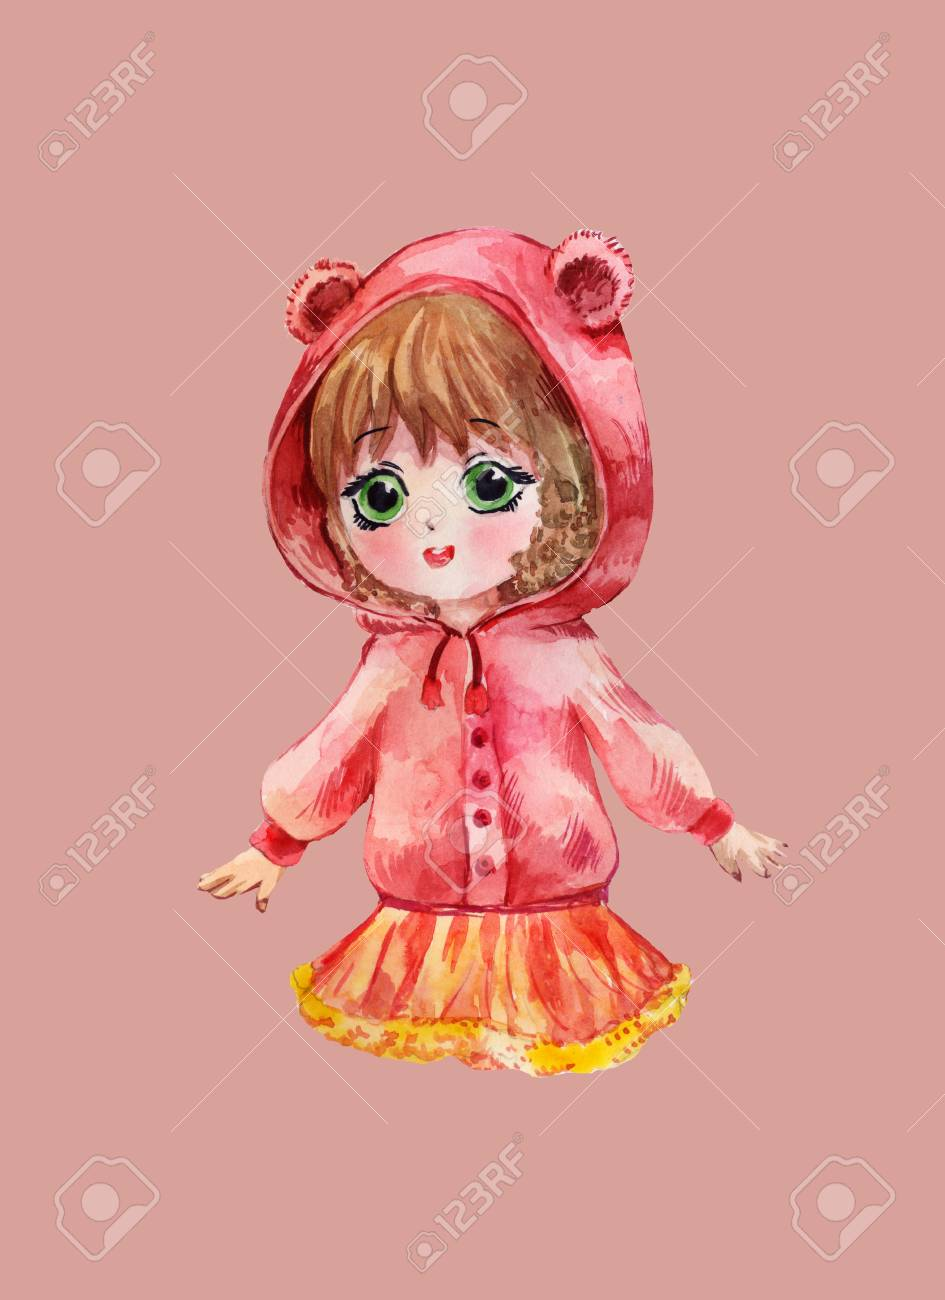 Chibi girl in red hoodie little anime child watercolor illustration stock illustration 93964267